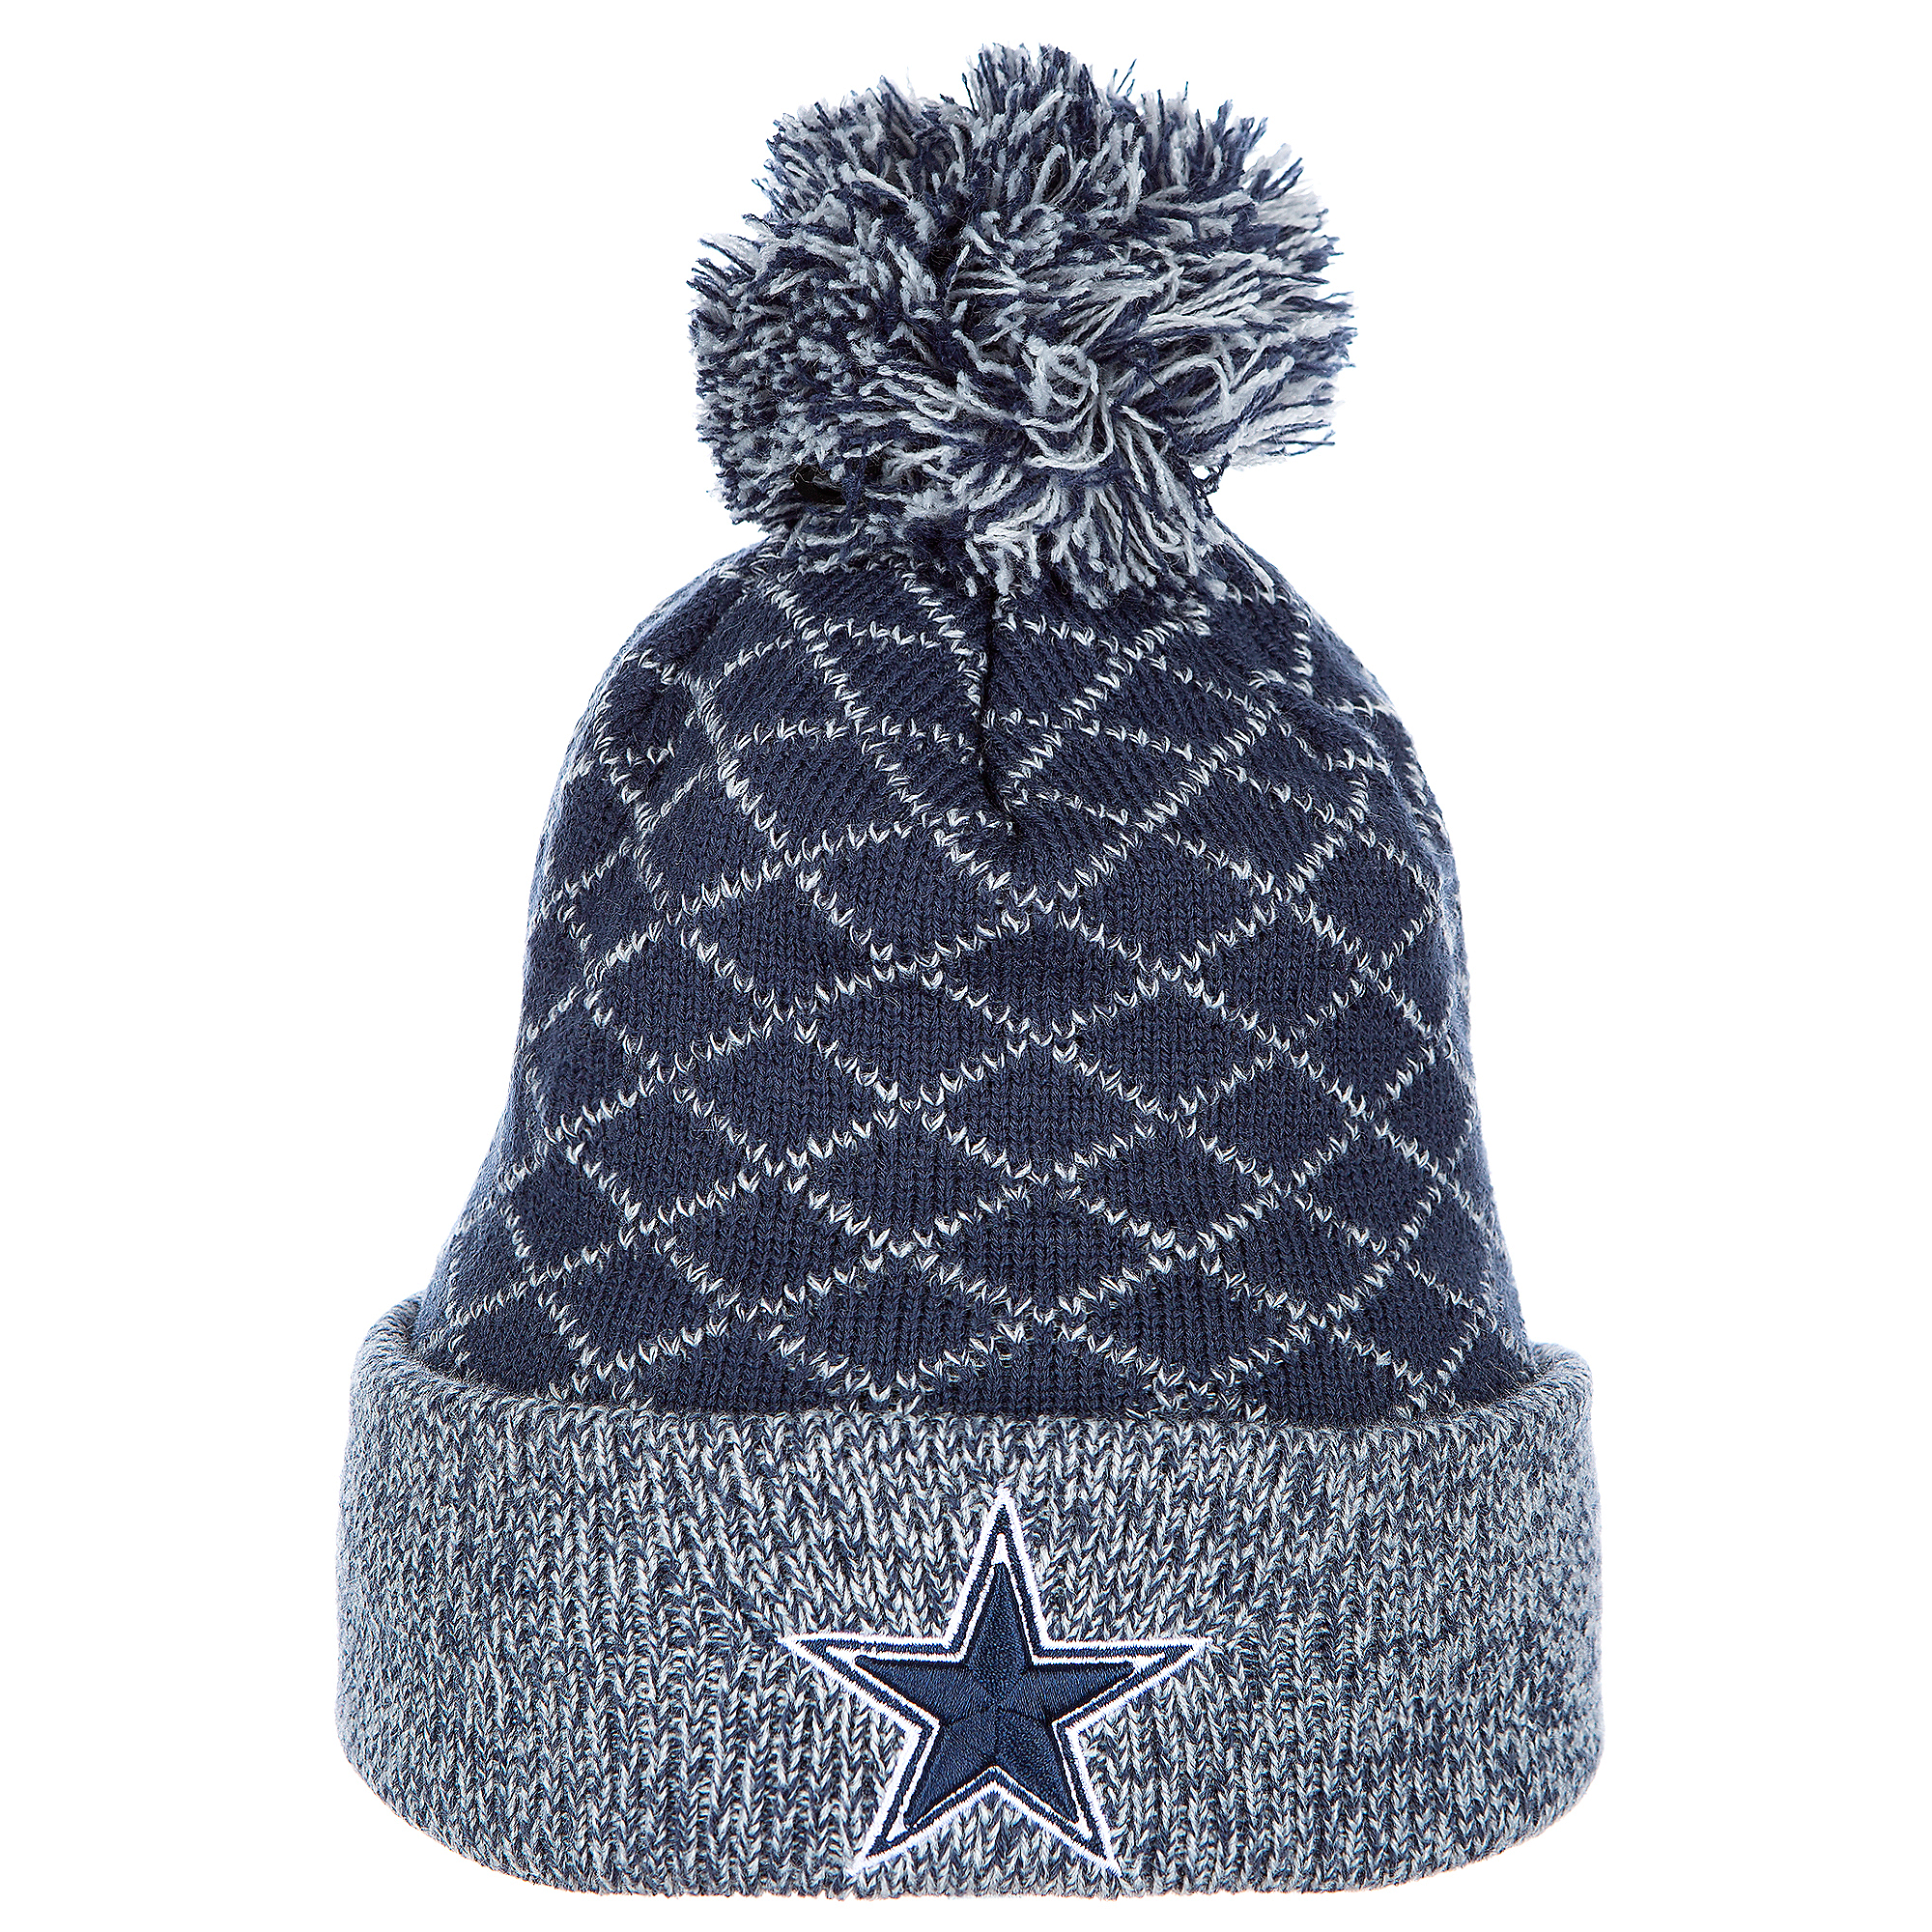 Dallas Cowboys New Era Criss Cross Knit Hat